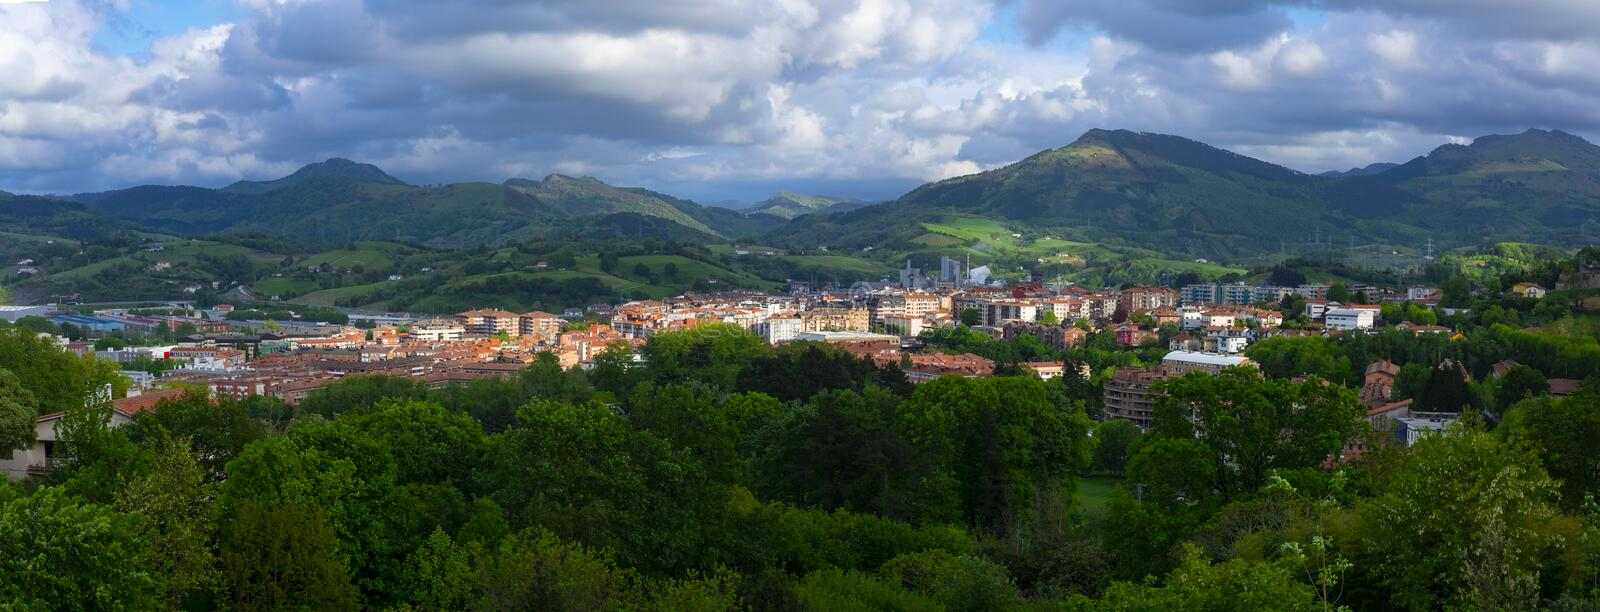 Scenic panoramic view of a village in mountain valley at sunset. Colourful countryside landscape with mountain. Hernani Basque Country royalty free stock image